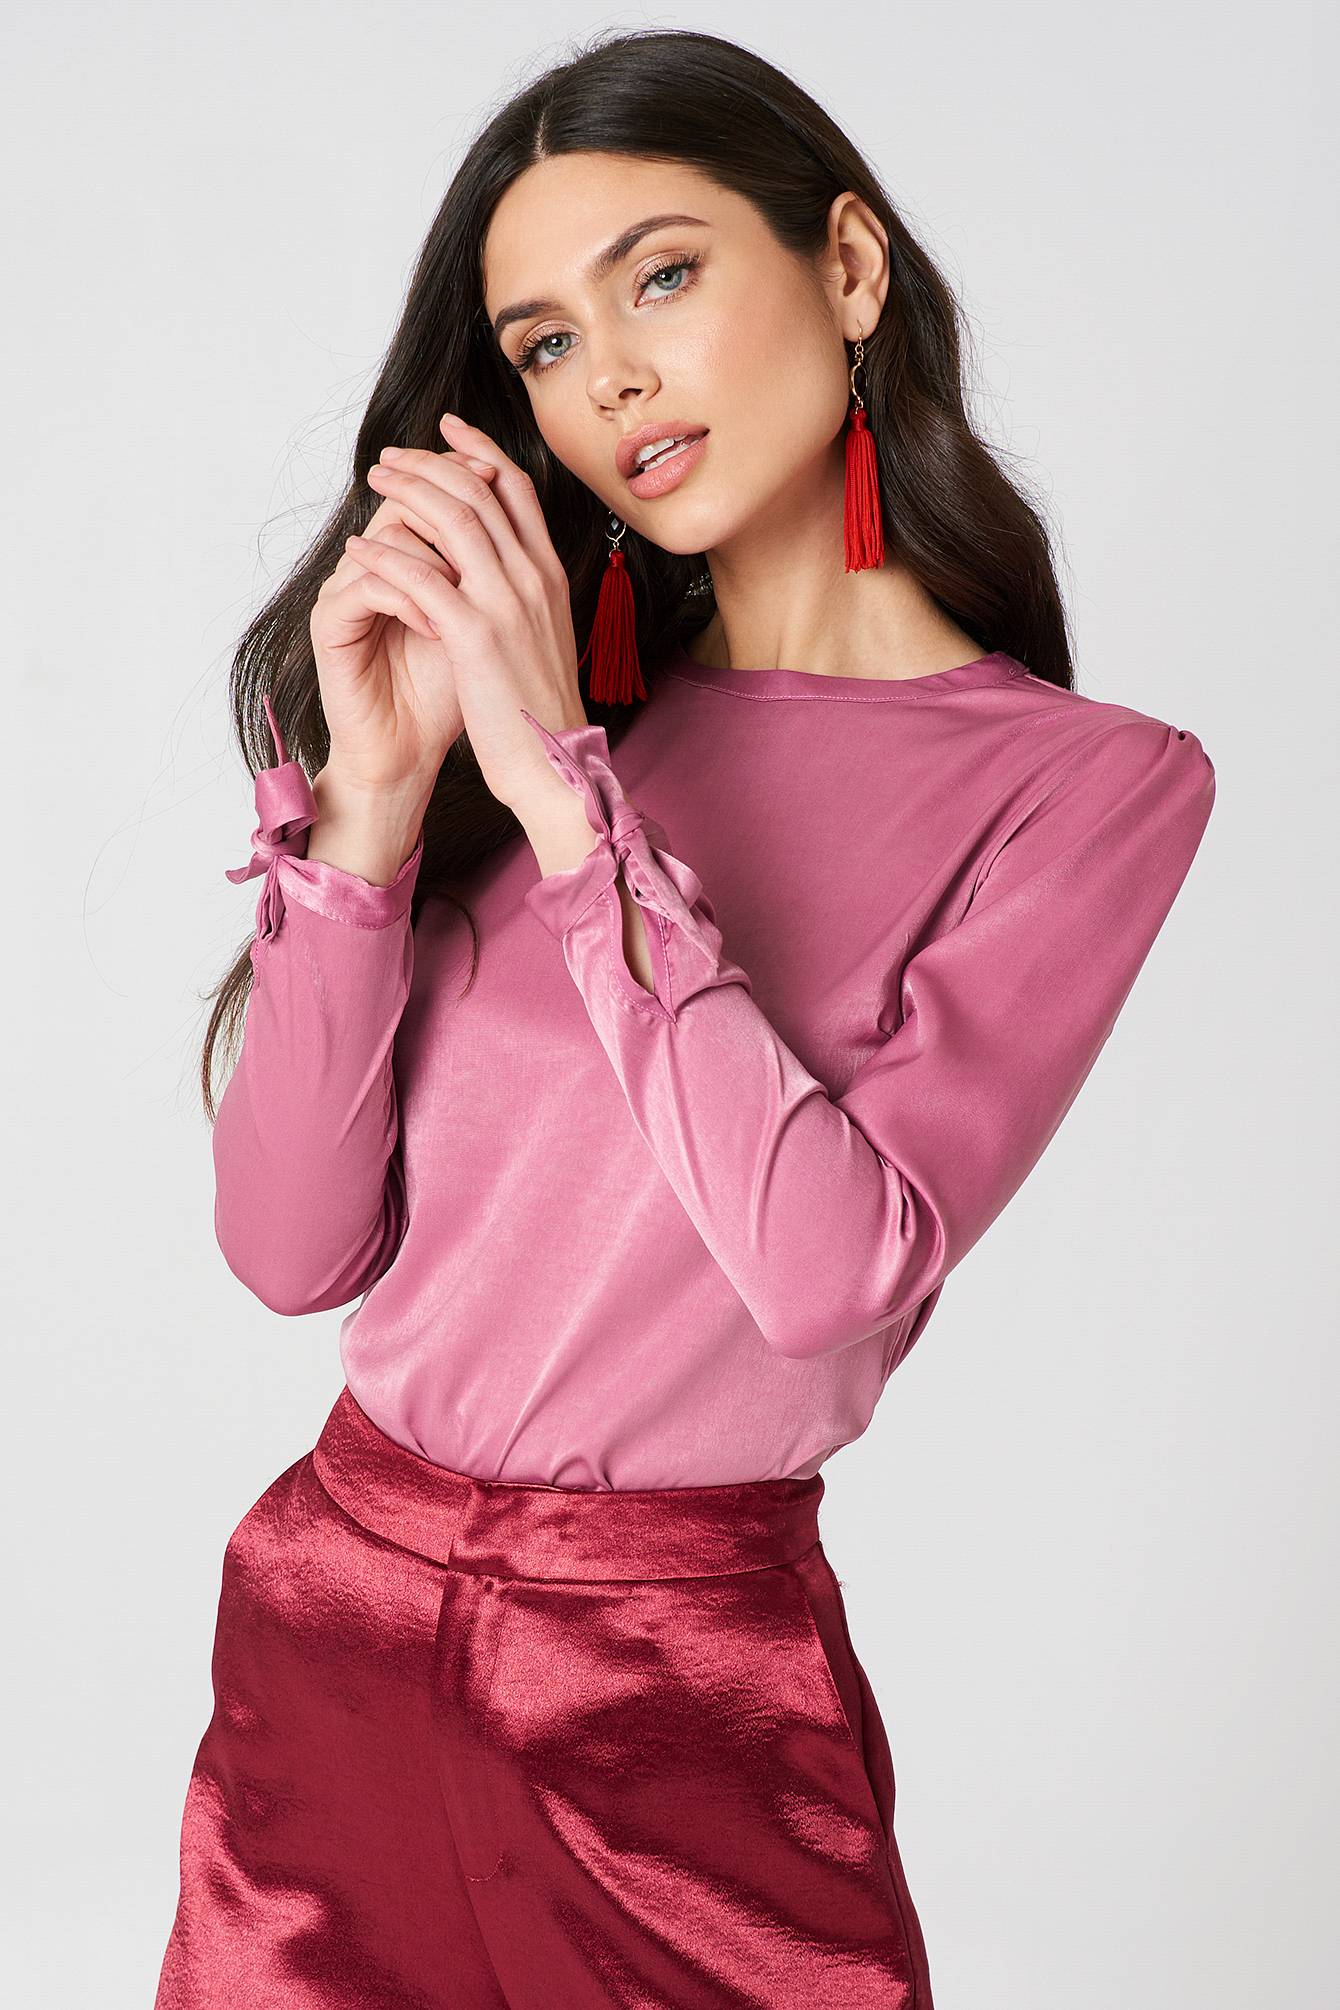 Therese Lindgren Fiona Blouse - Pink